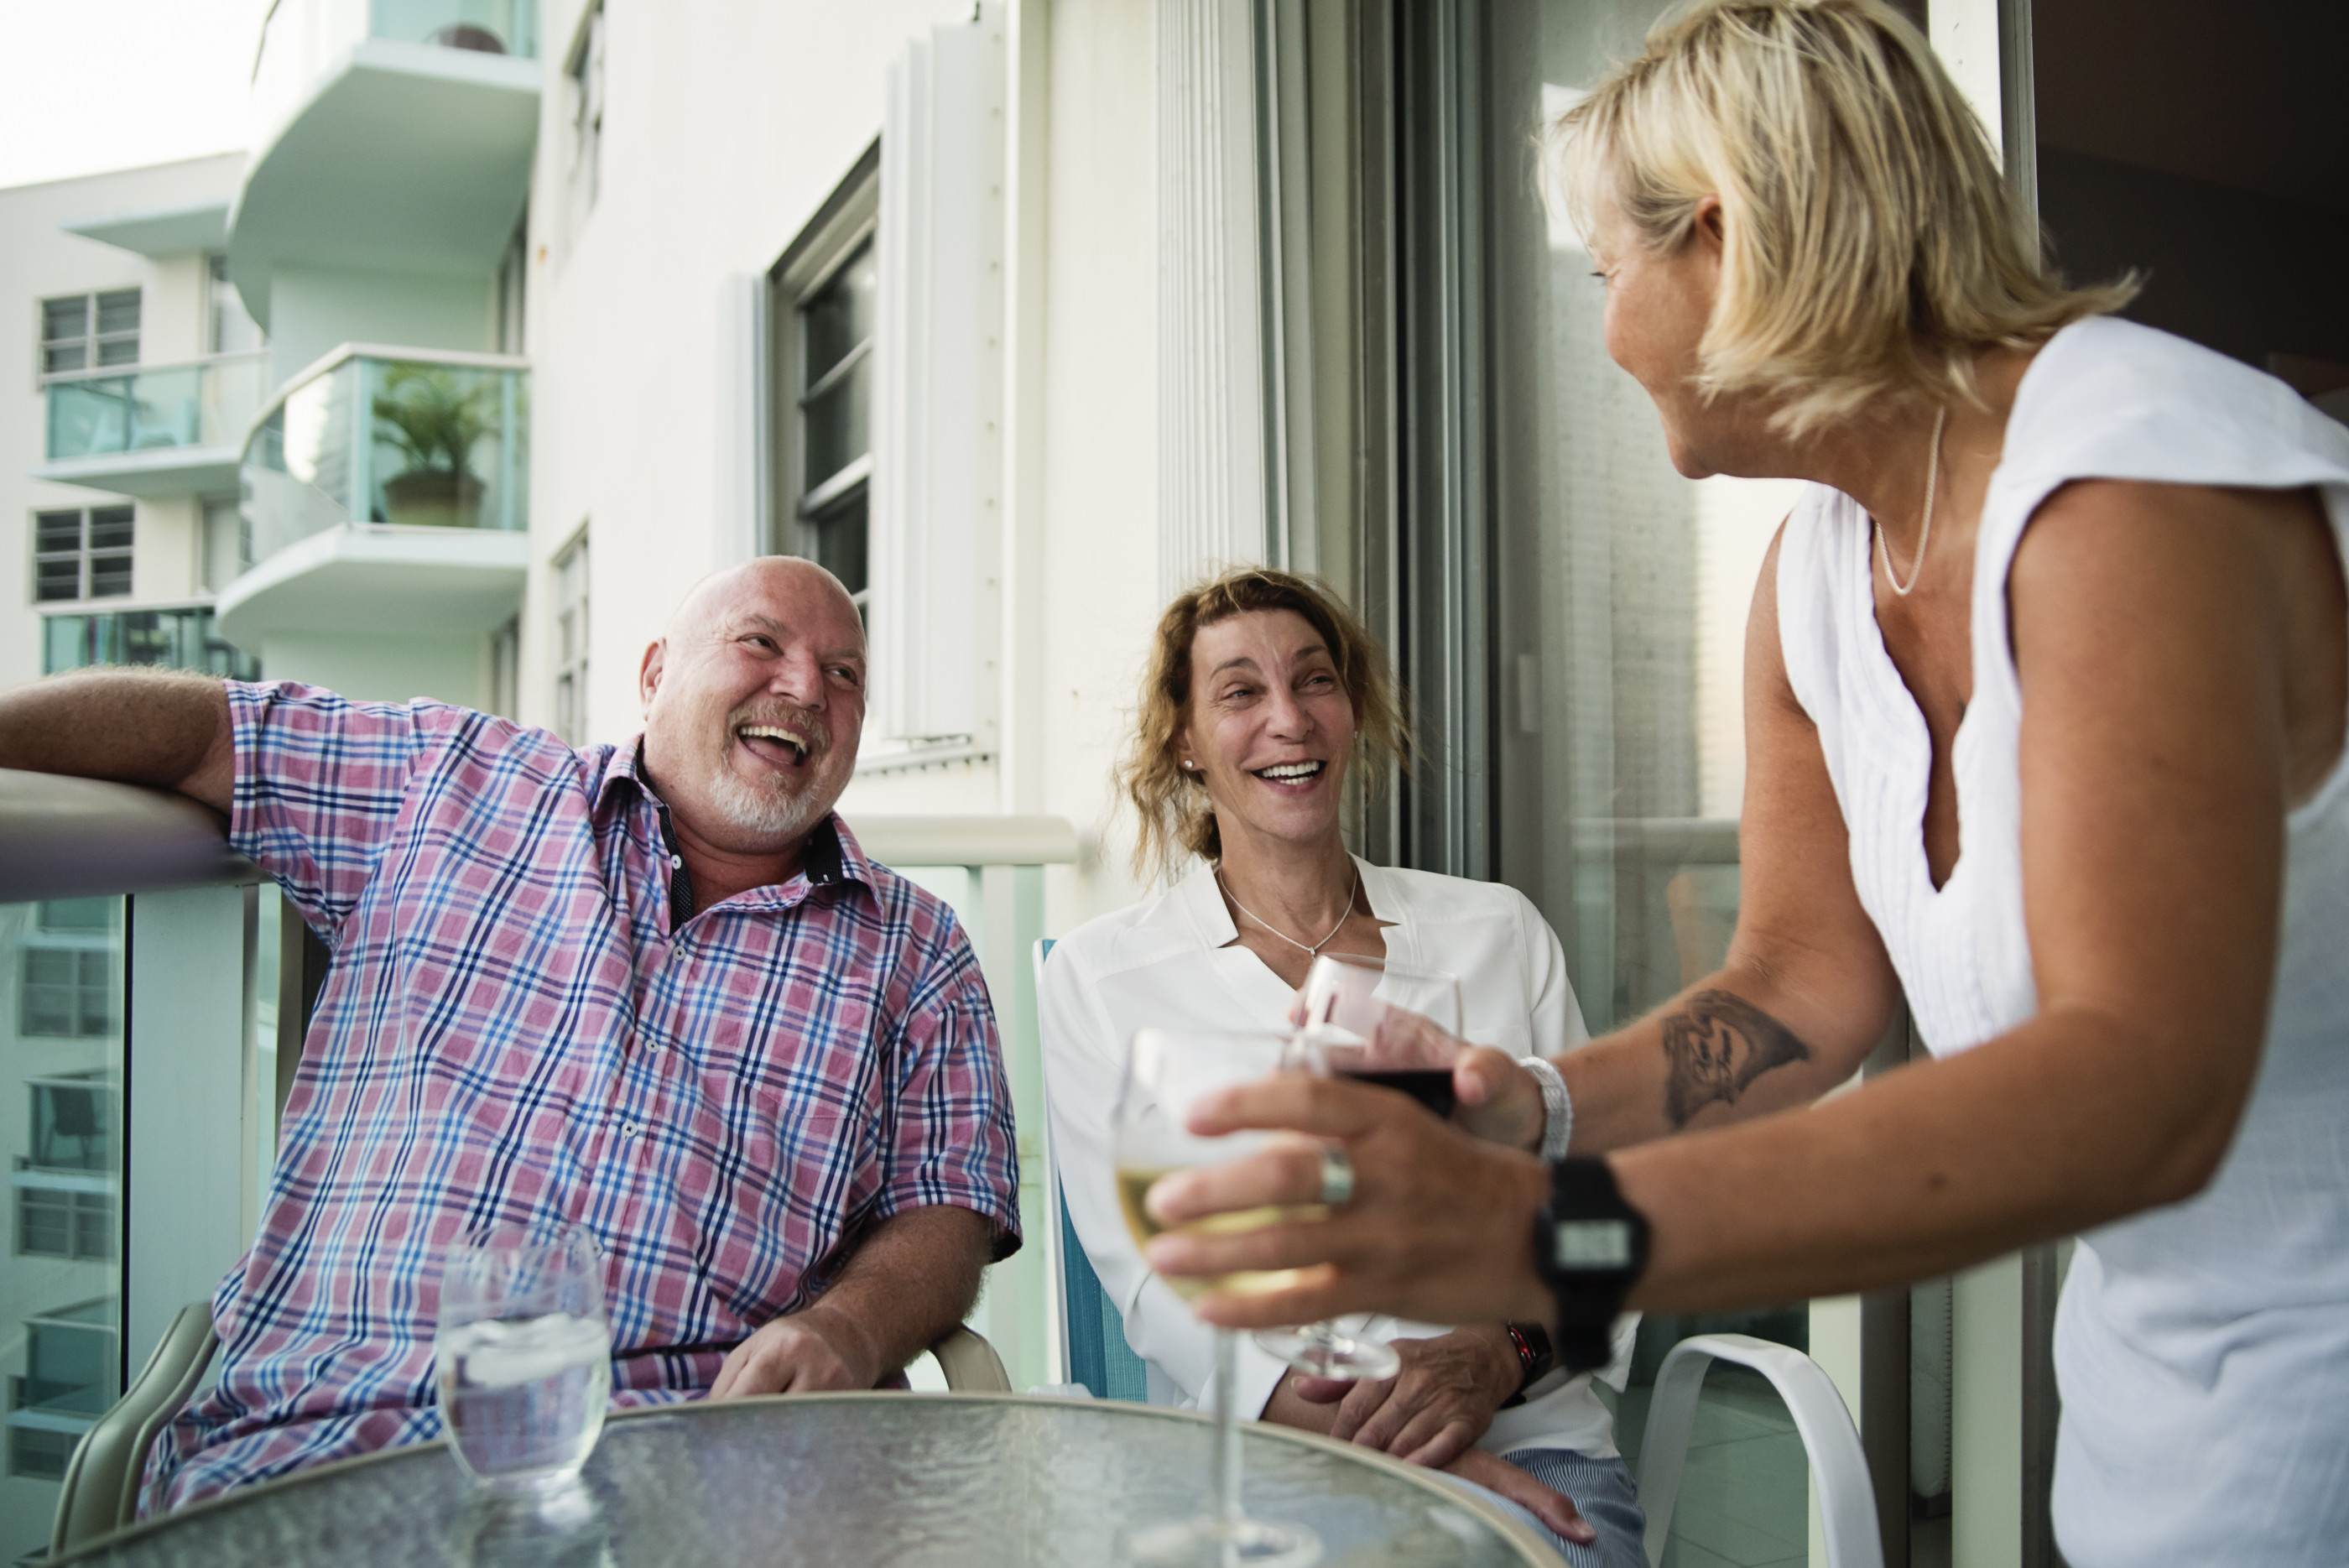 Group of mature LGBTQ friends at happy hour on balcony over the ocean. A lesbian couple, a gay man and a trans woman having a really good time together. Horizontal outdoors waist up shot with sun flare and copy space.